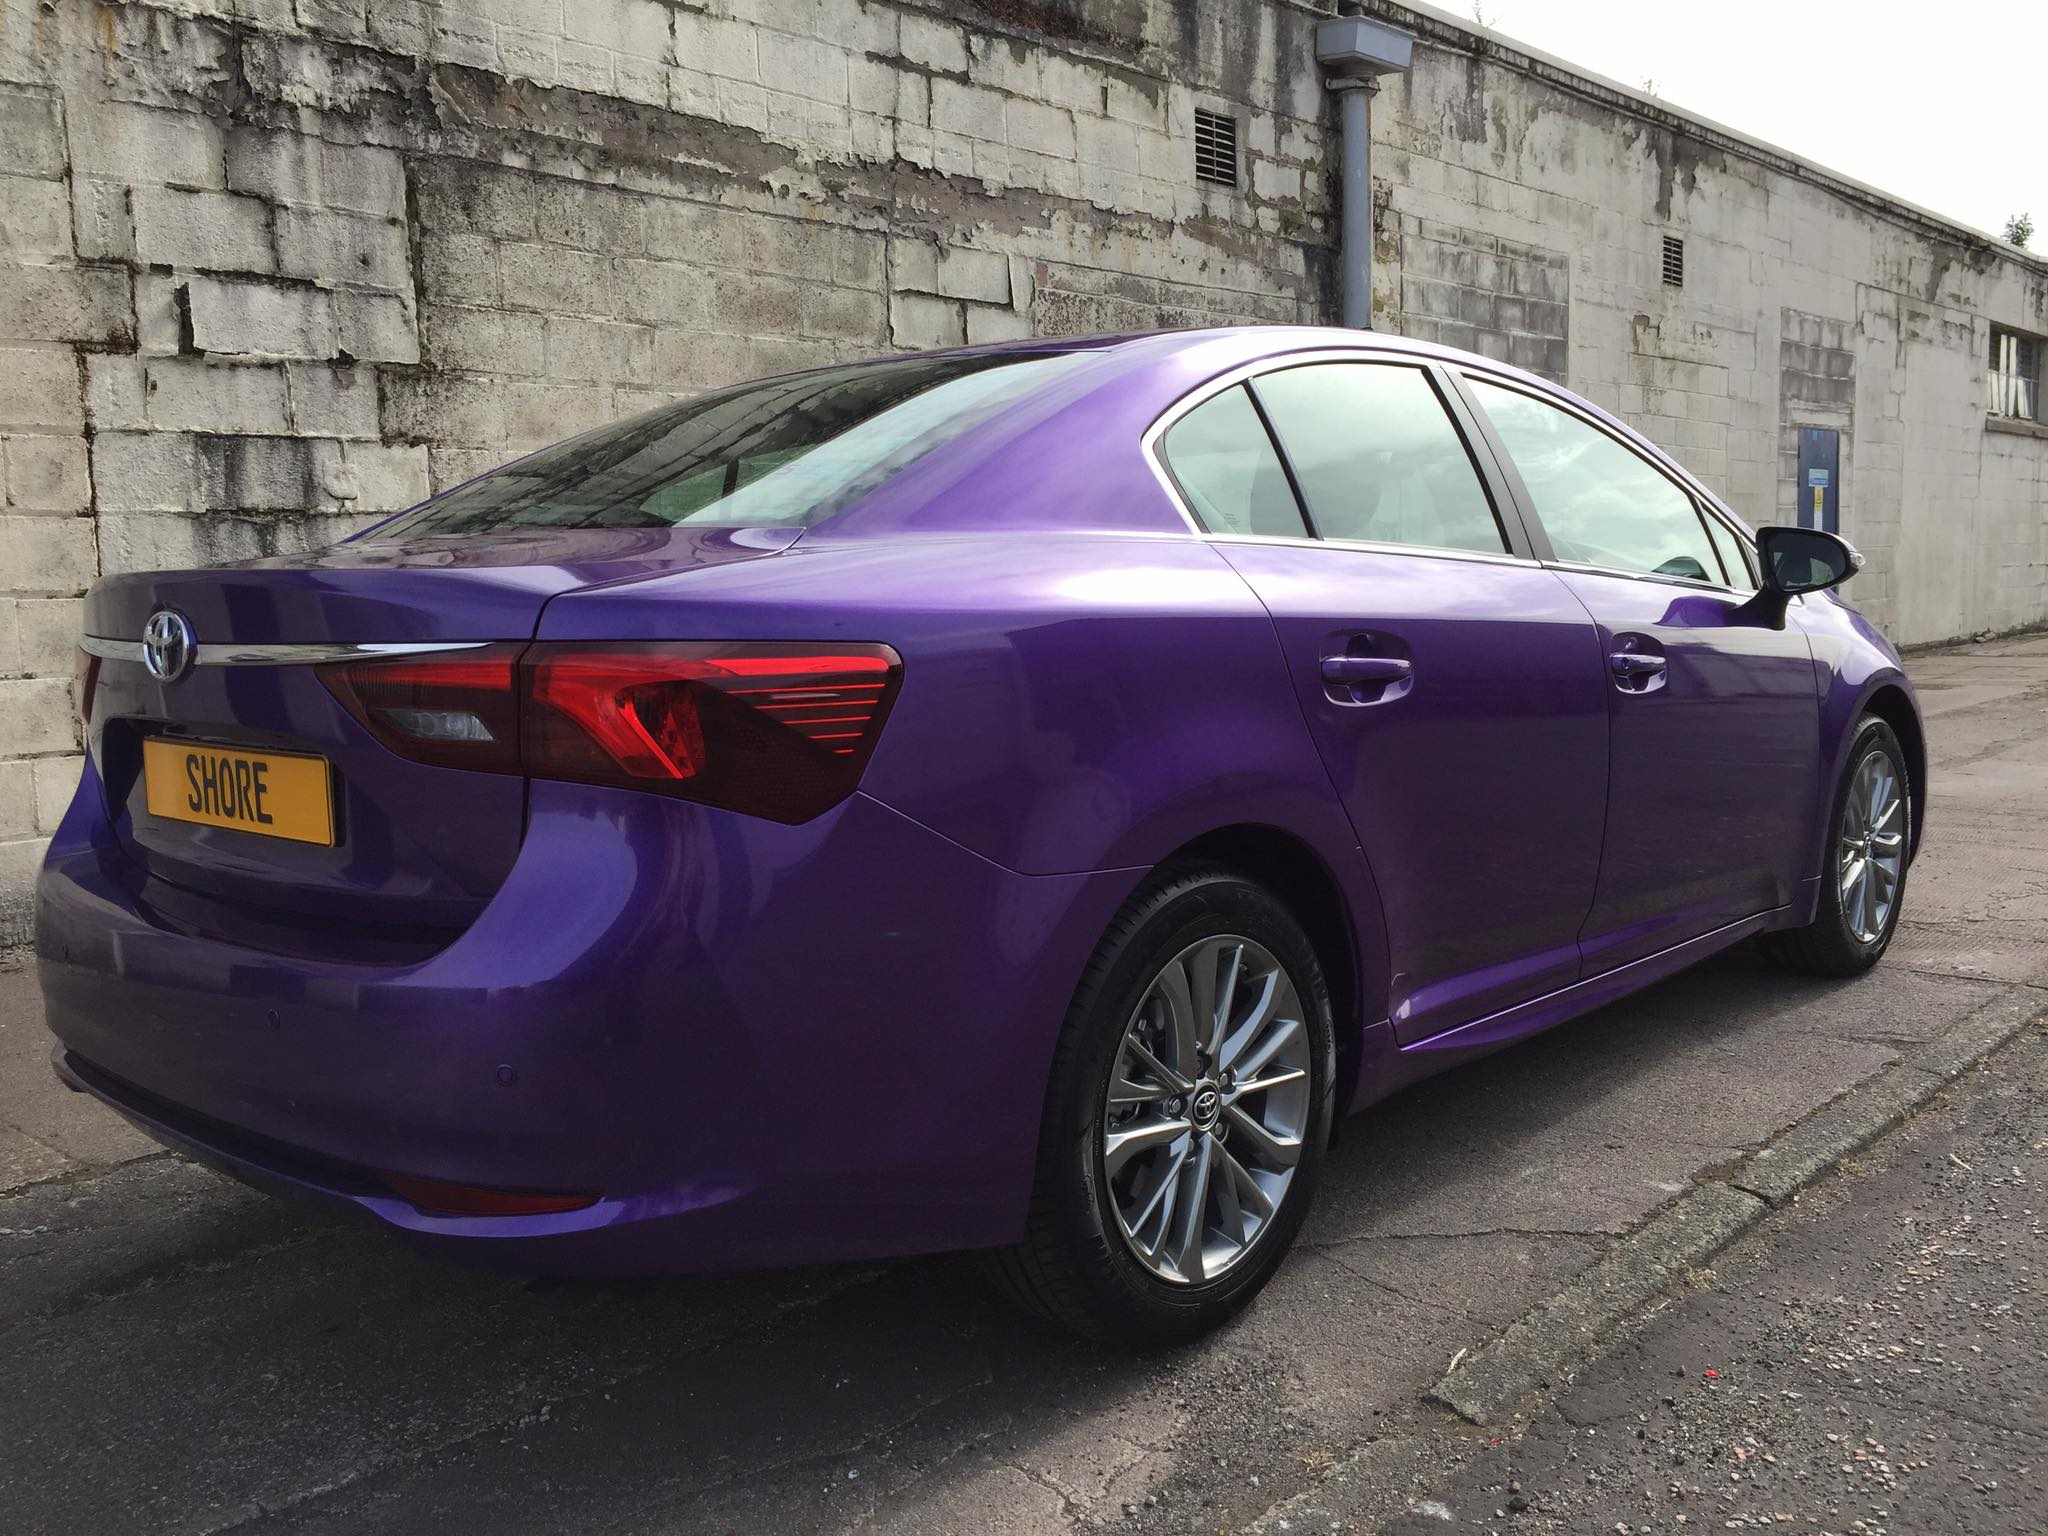 Toyota Avensis Purple wrap Rear